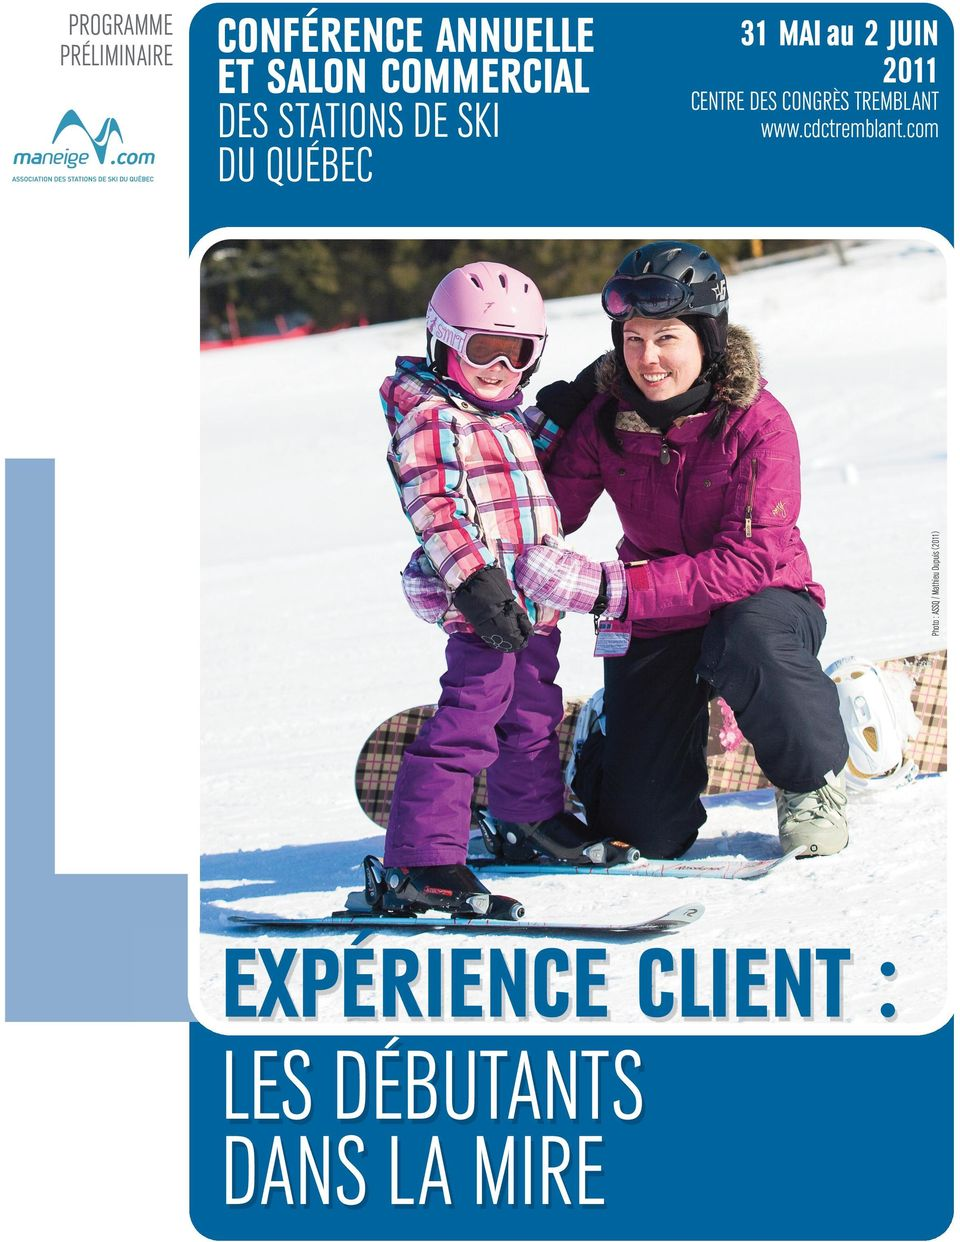 www.cdctremblant.